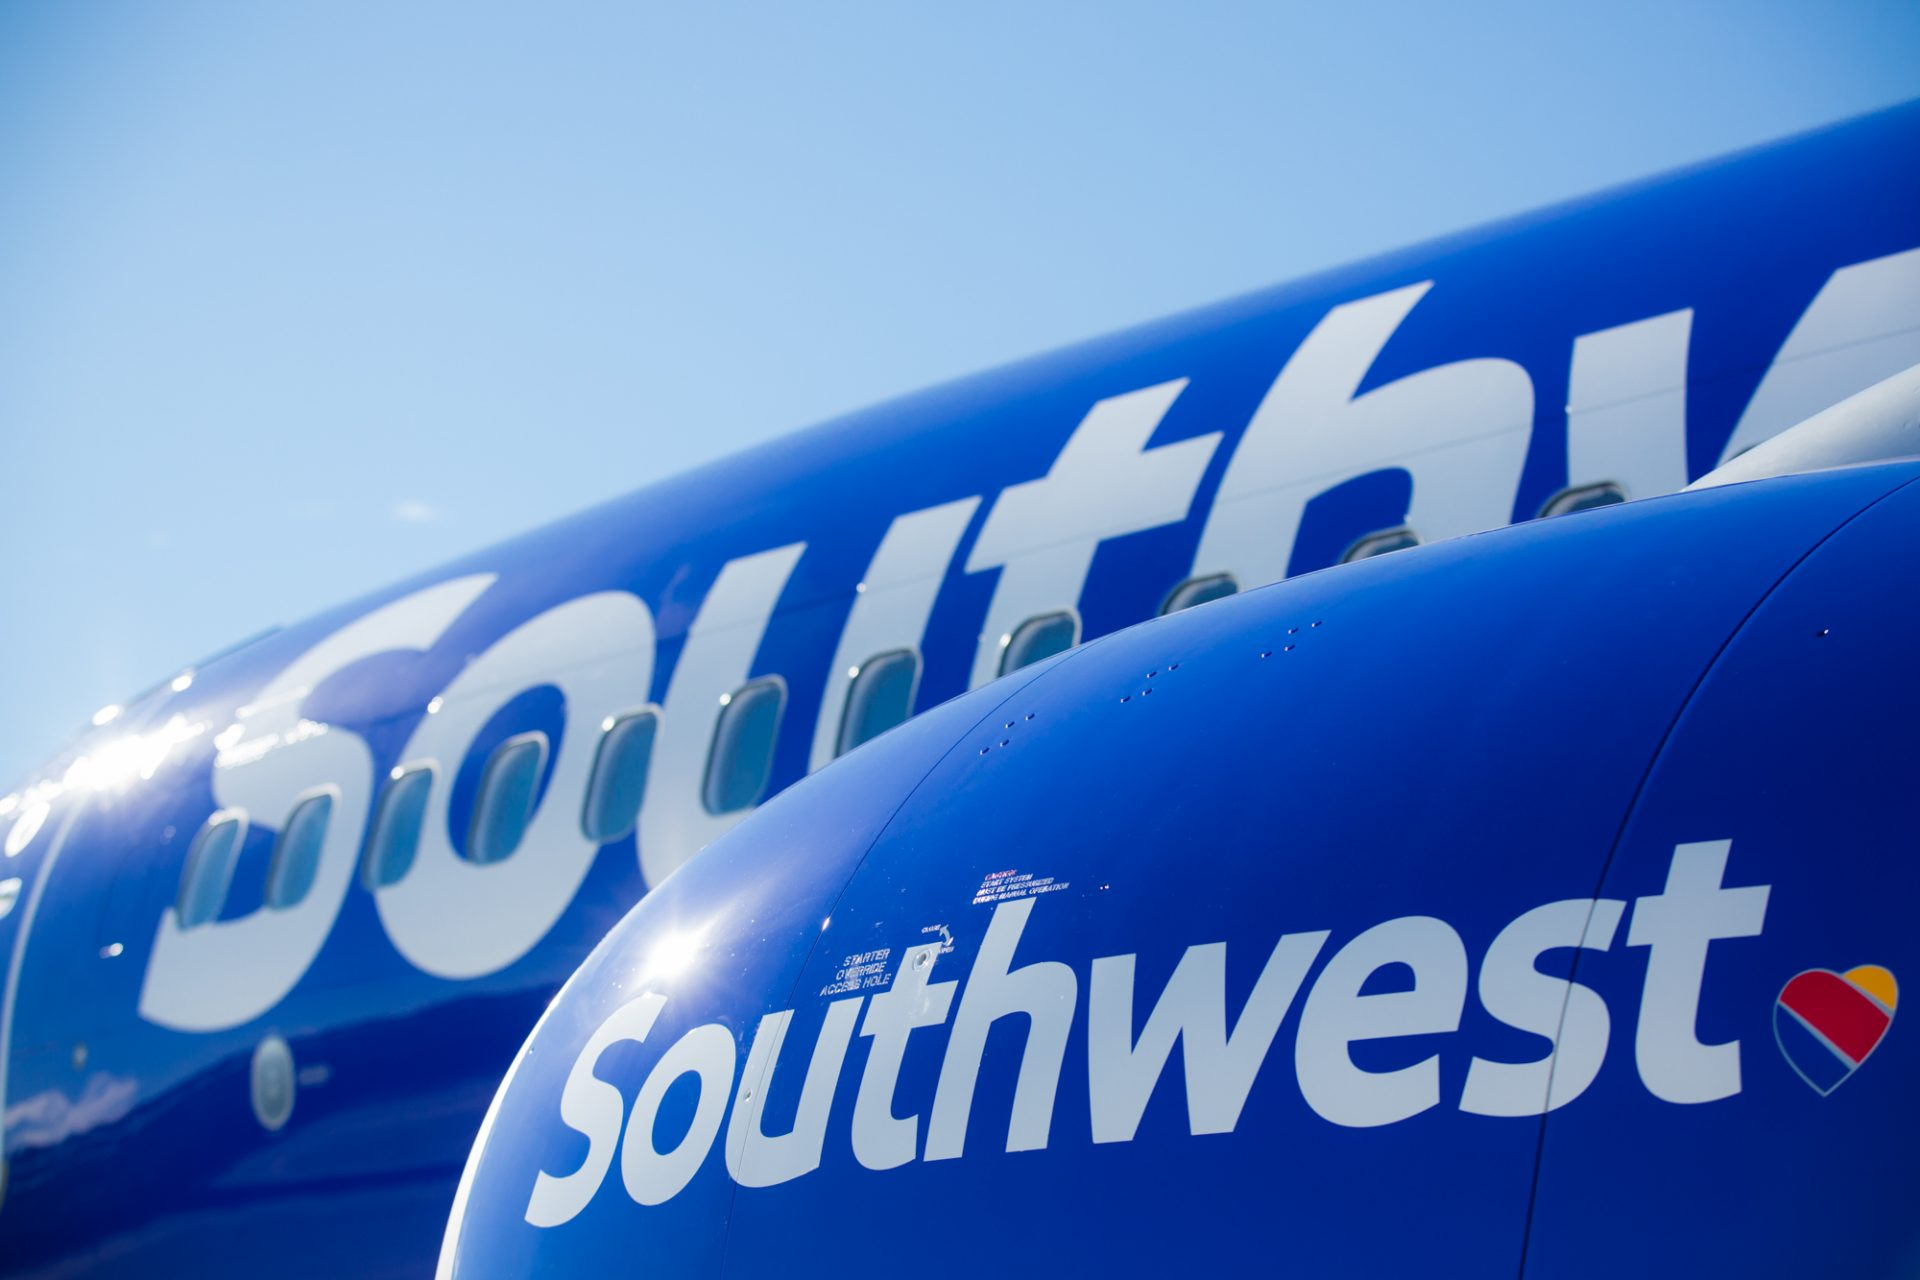 heart one stephen m keller - Southwest Airlines reveals new livery